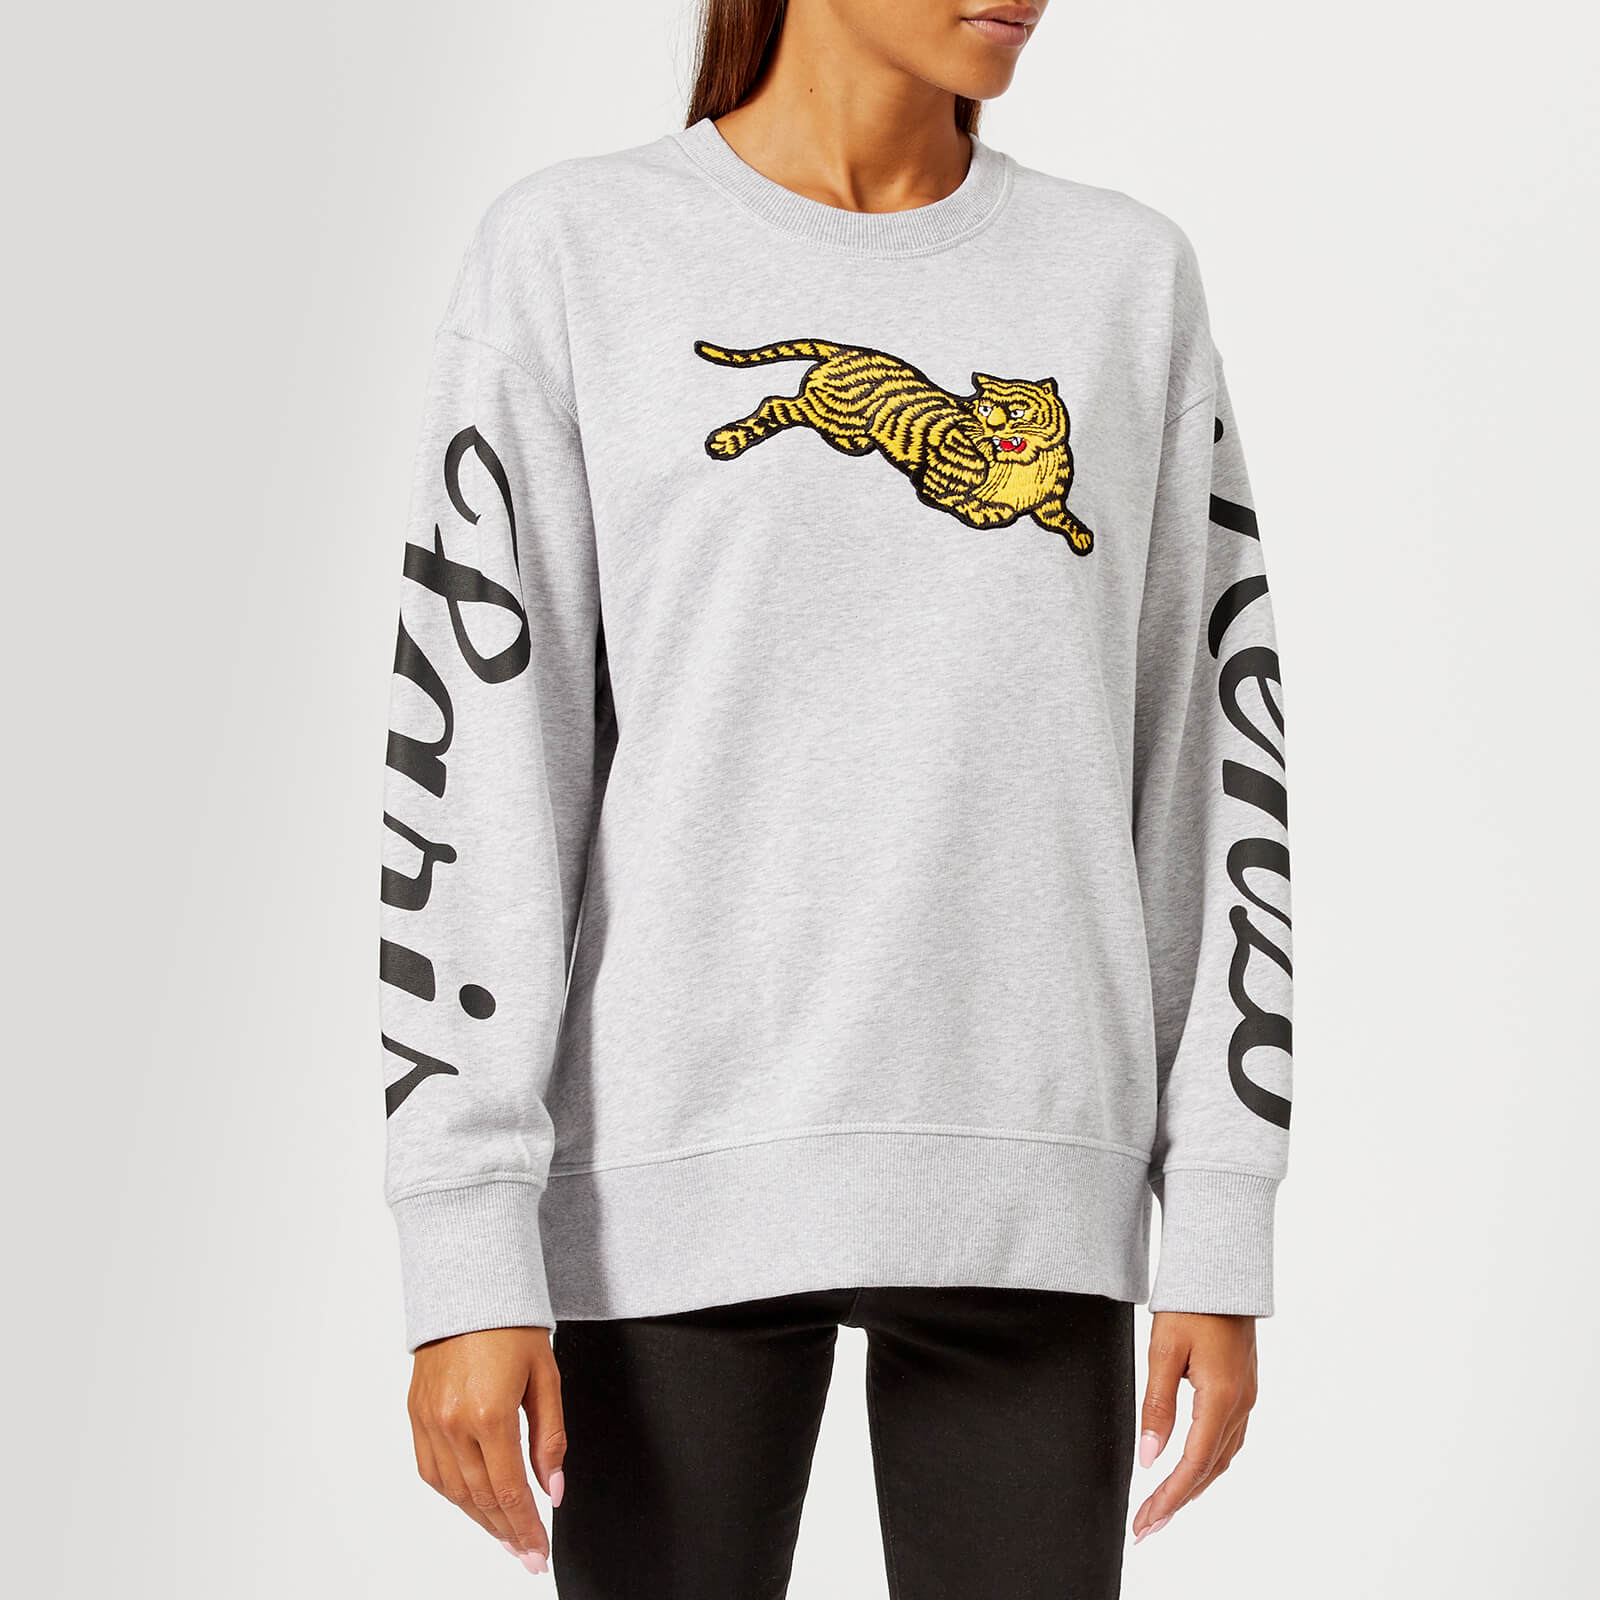 423ff1082525 KENZO Women's Jumping Tiger Molleton Sweatshirt - Grey - Free UK Delivery  over £50